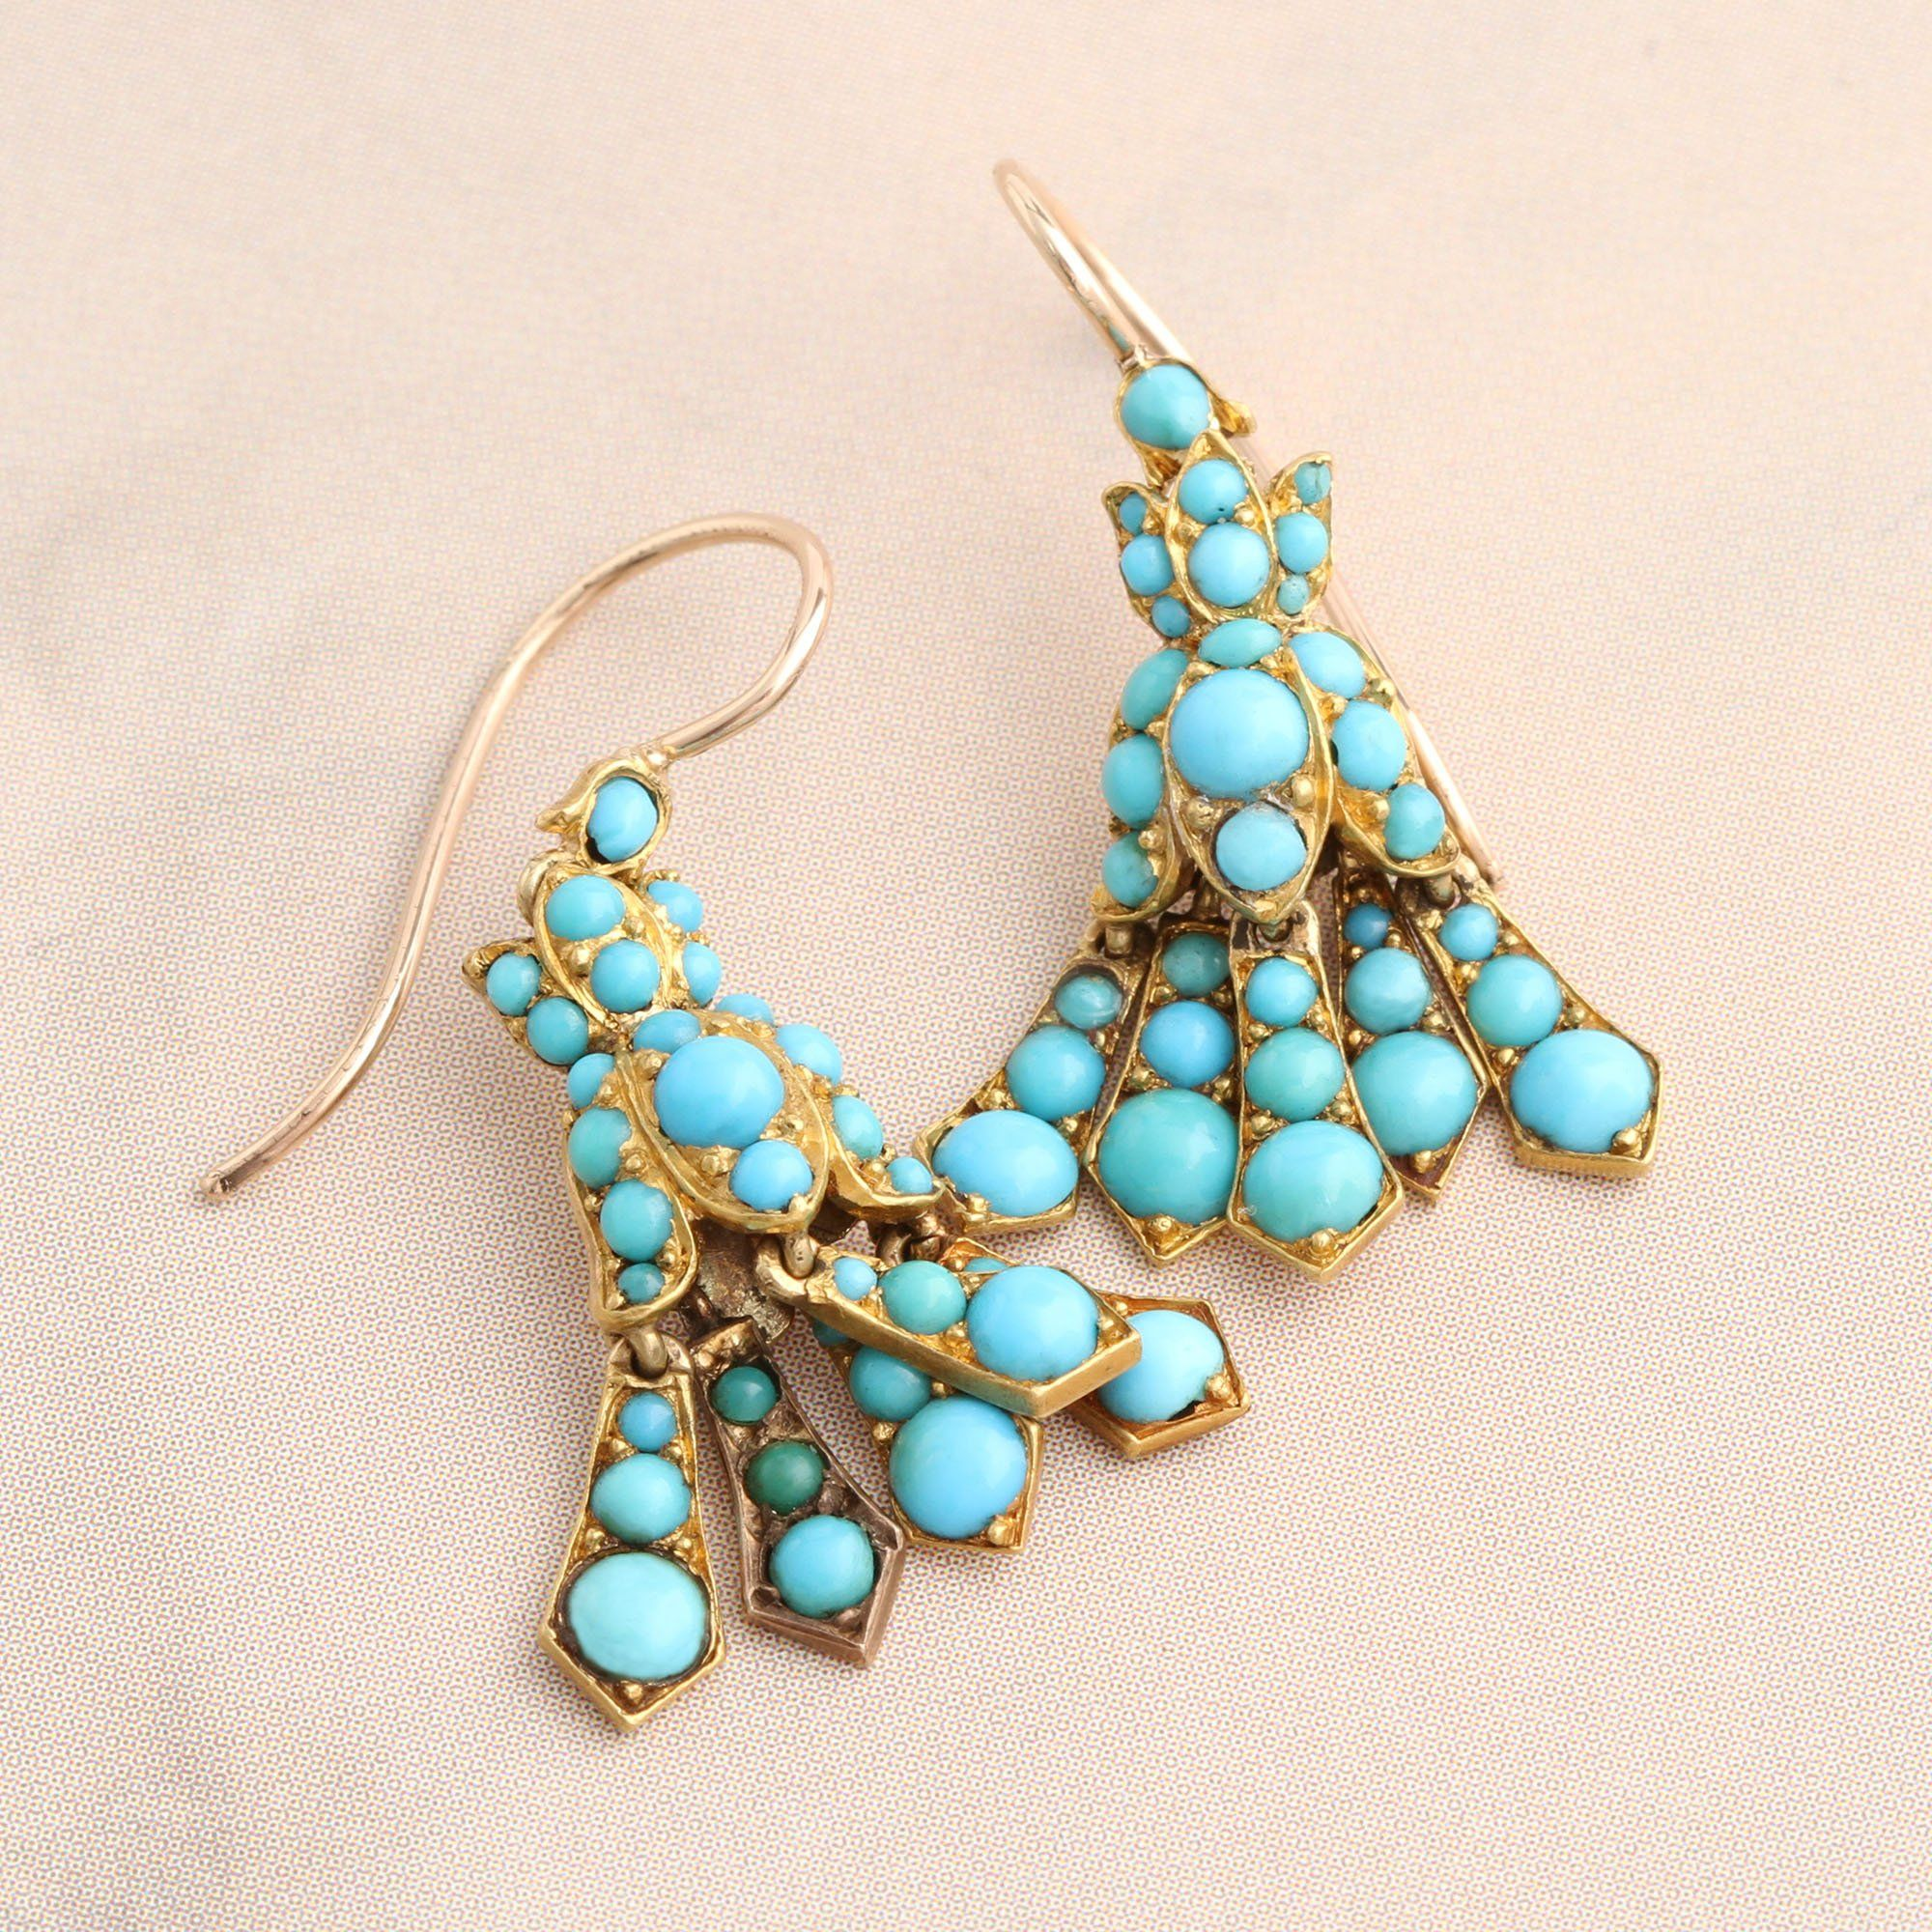 Detail of Victorian Turquoise Bluebell Earrings